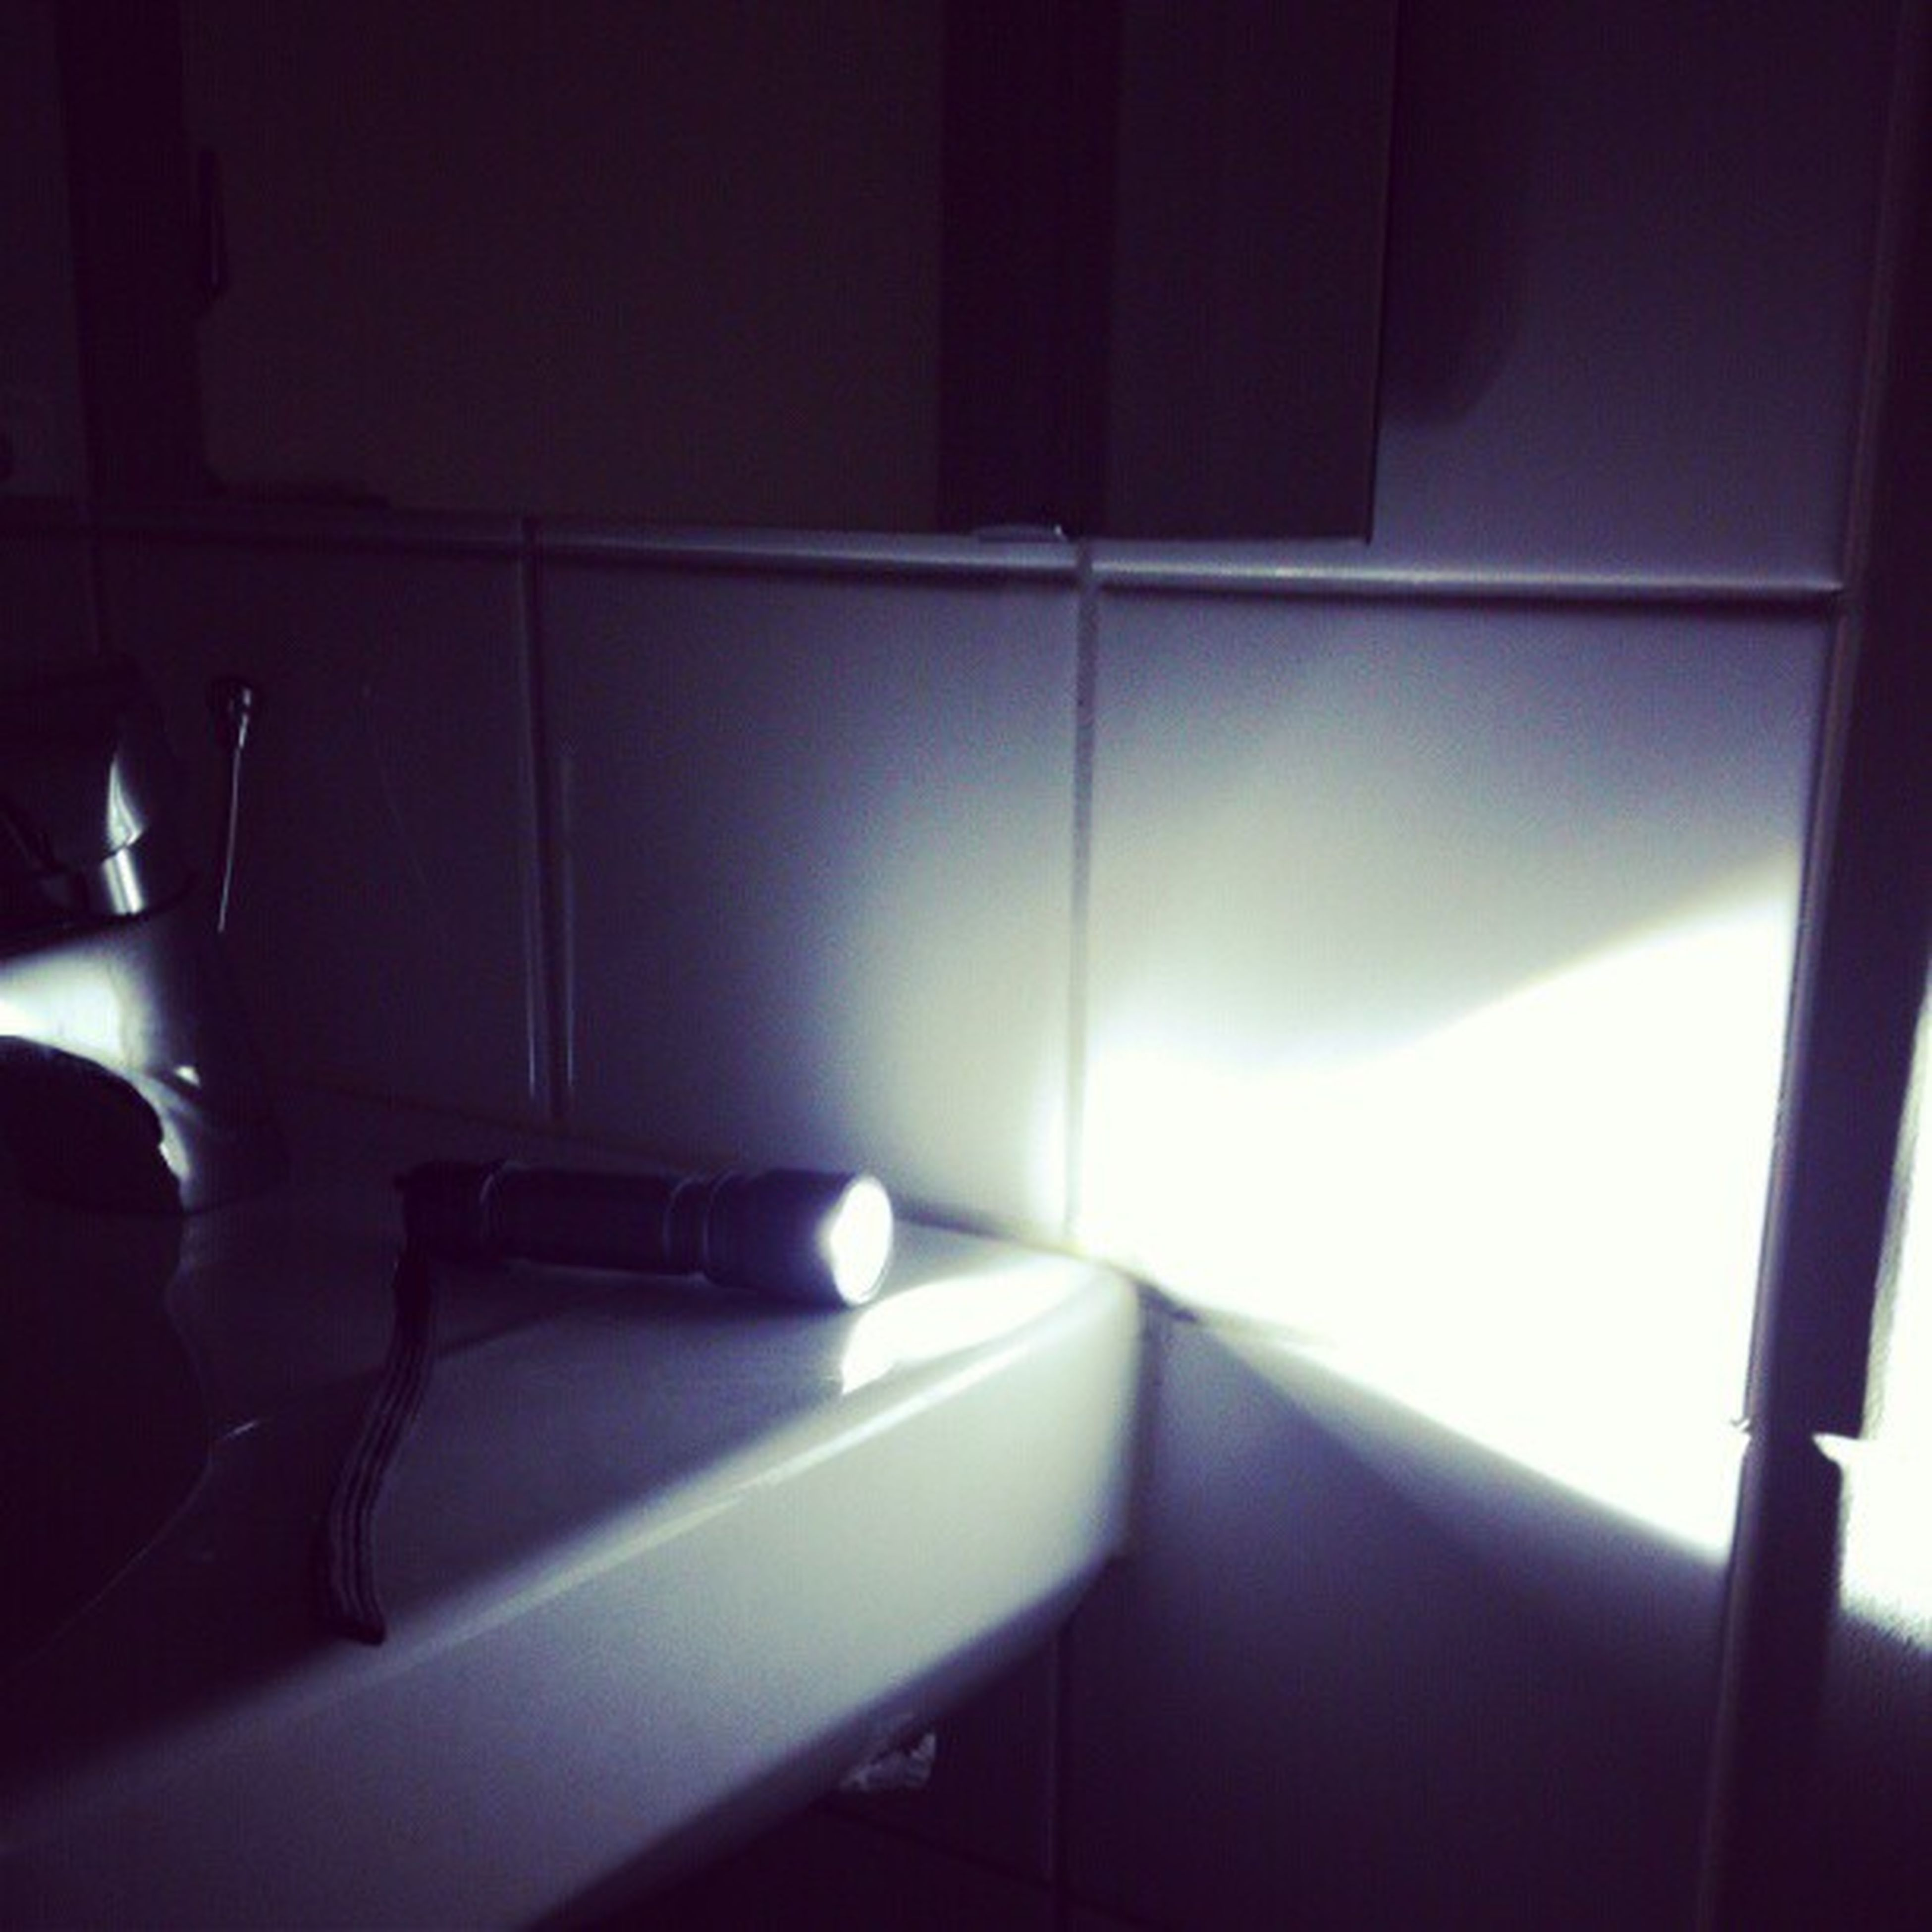 indoors, illuminated, home interior, absence, lighting equipment, empty, interior, window, domestic room, wall - building feature, room, no people, light - natural phenomenon, bathroom, chair, wall, flooring, reflection, sunlight, ceiling